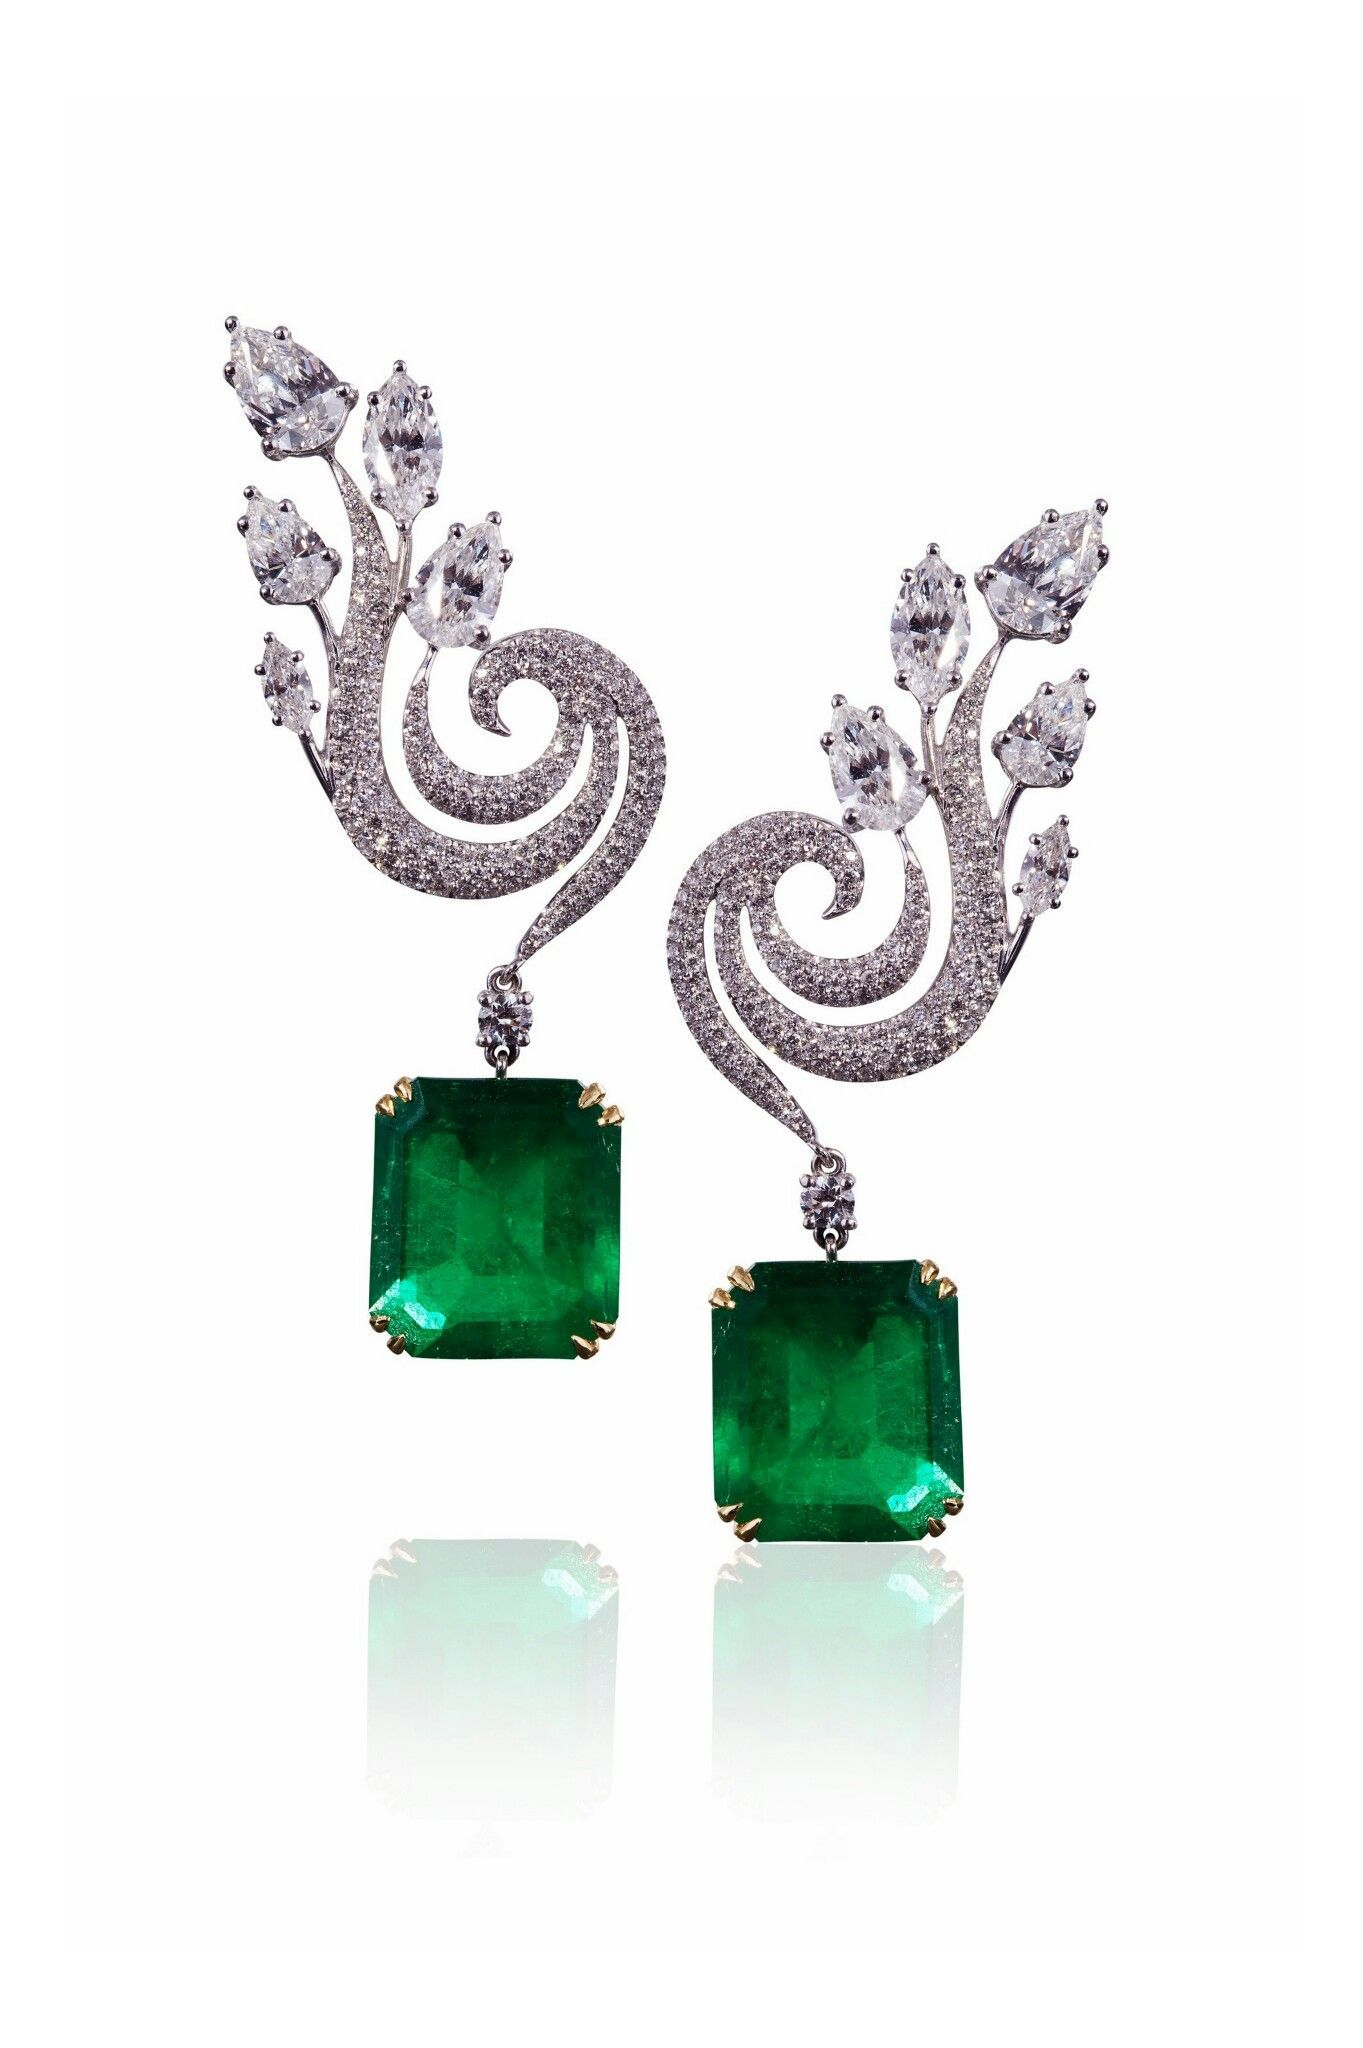 The Phoenix Earrings by Molu Fine Jewellery with emeralds and